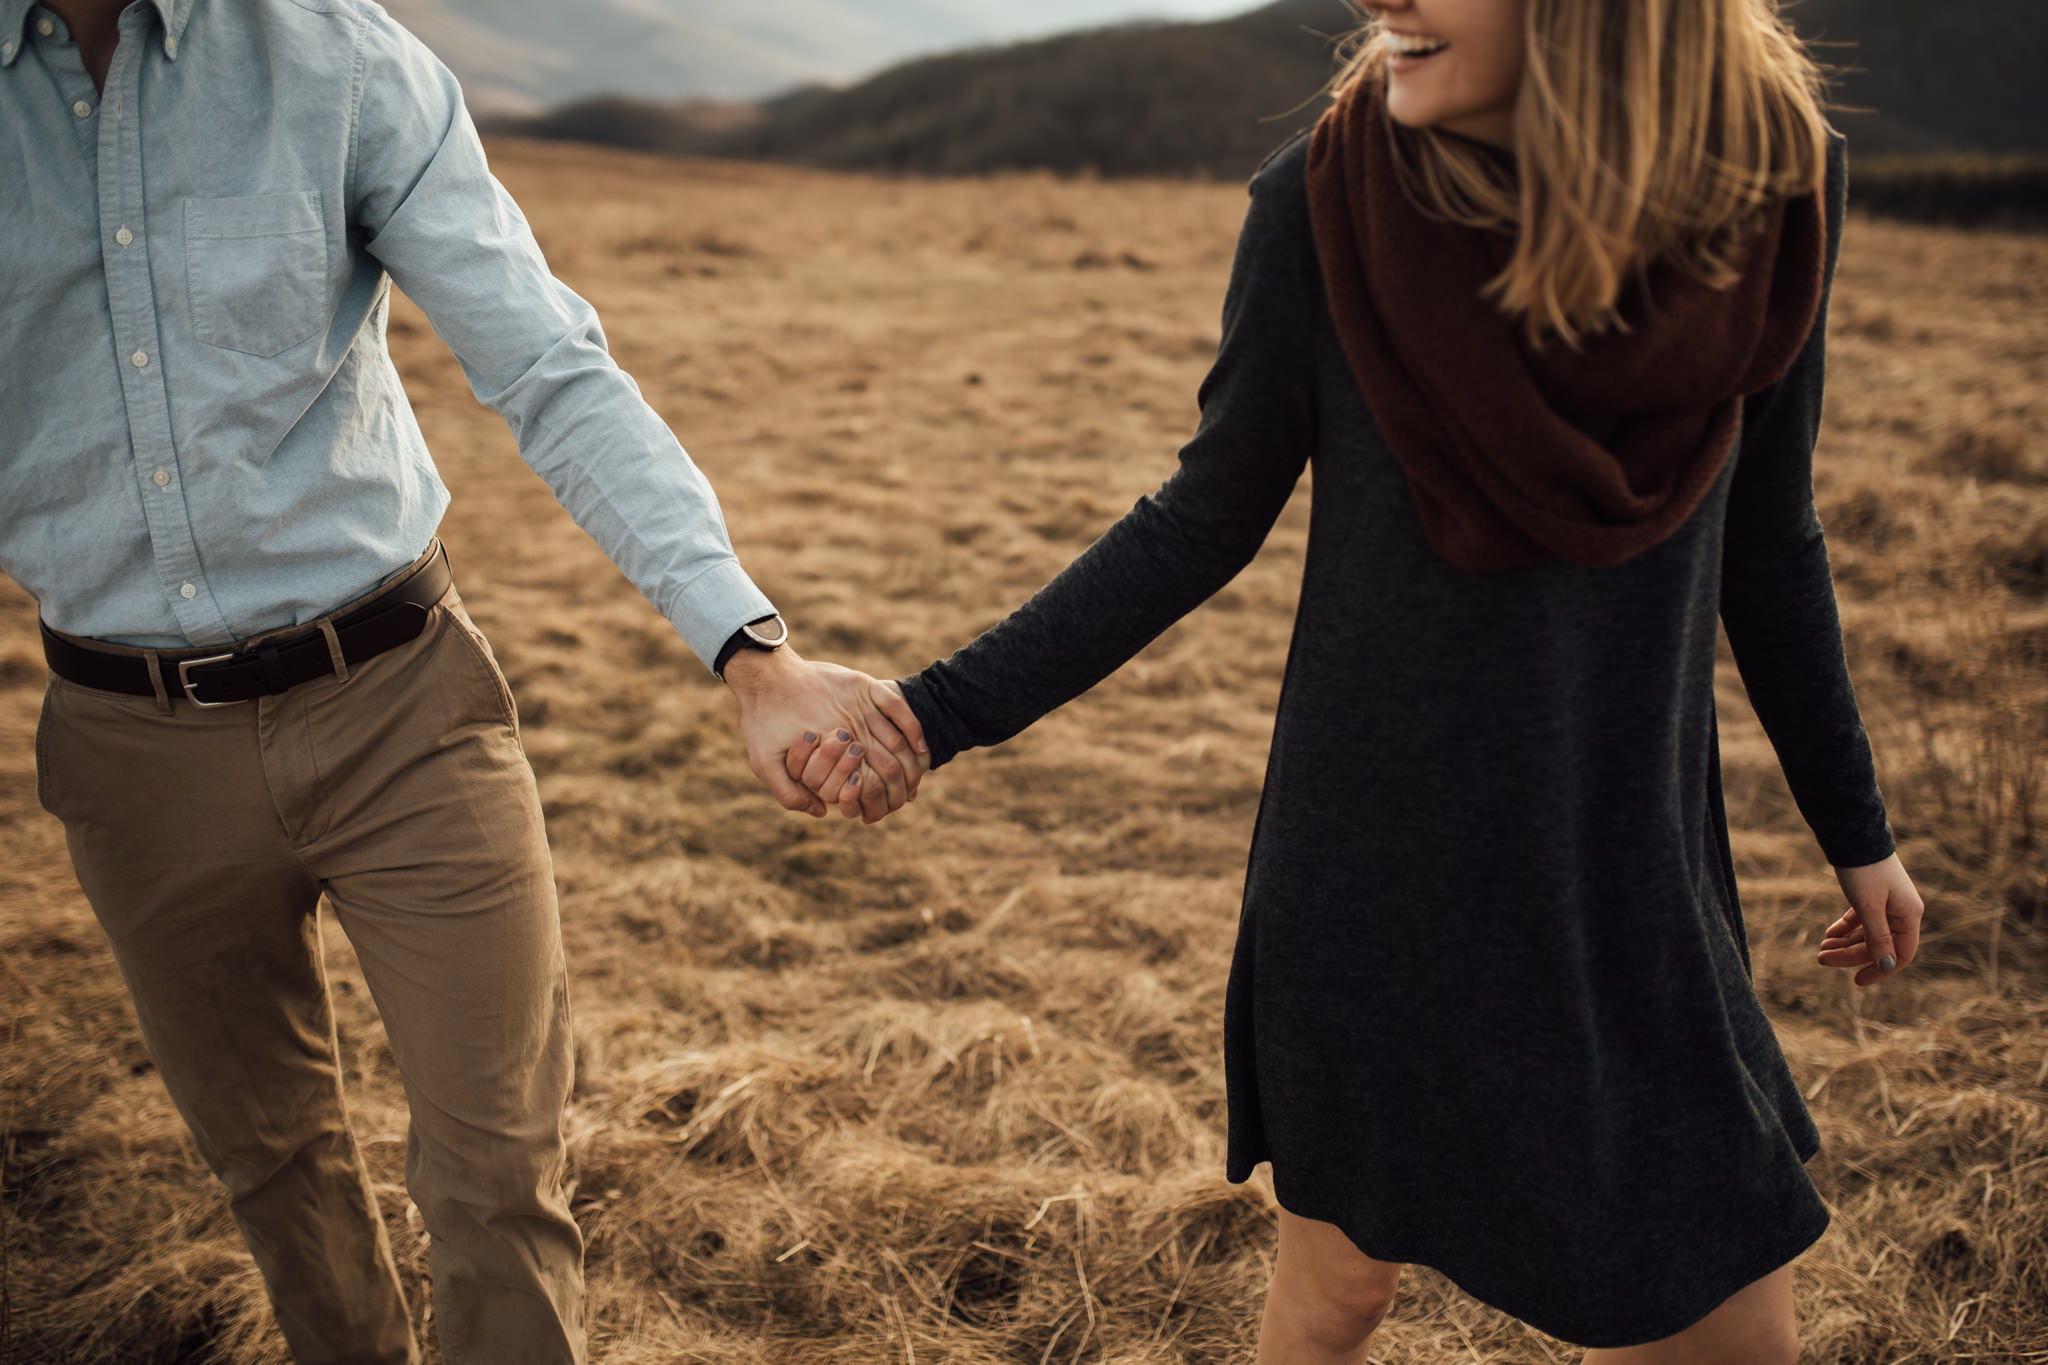 max-patch-engagement-pictures-cassie-cook-photography-asheville-wedding-photographer-25.jpg